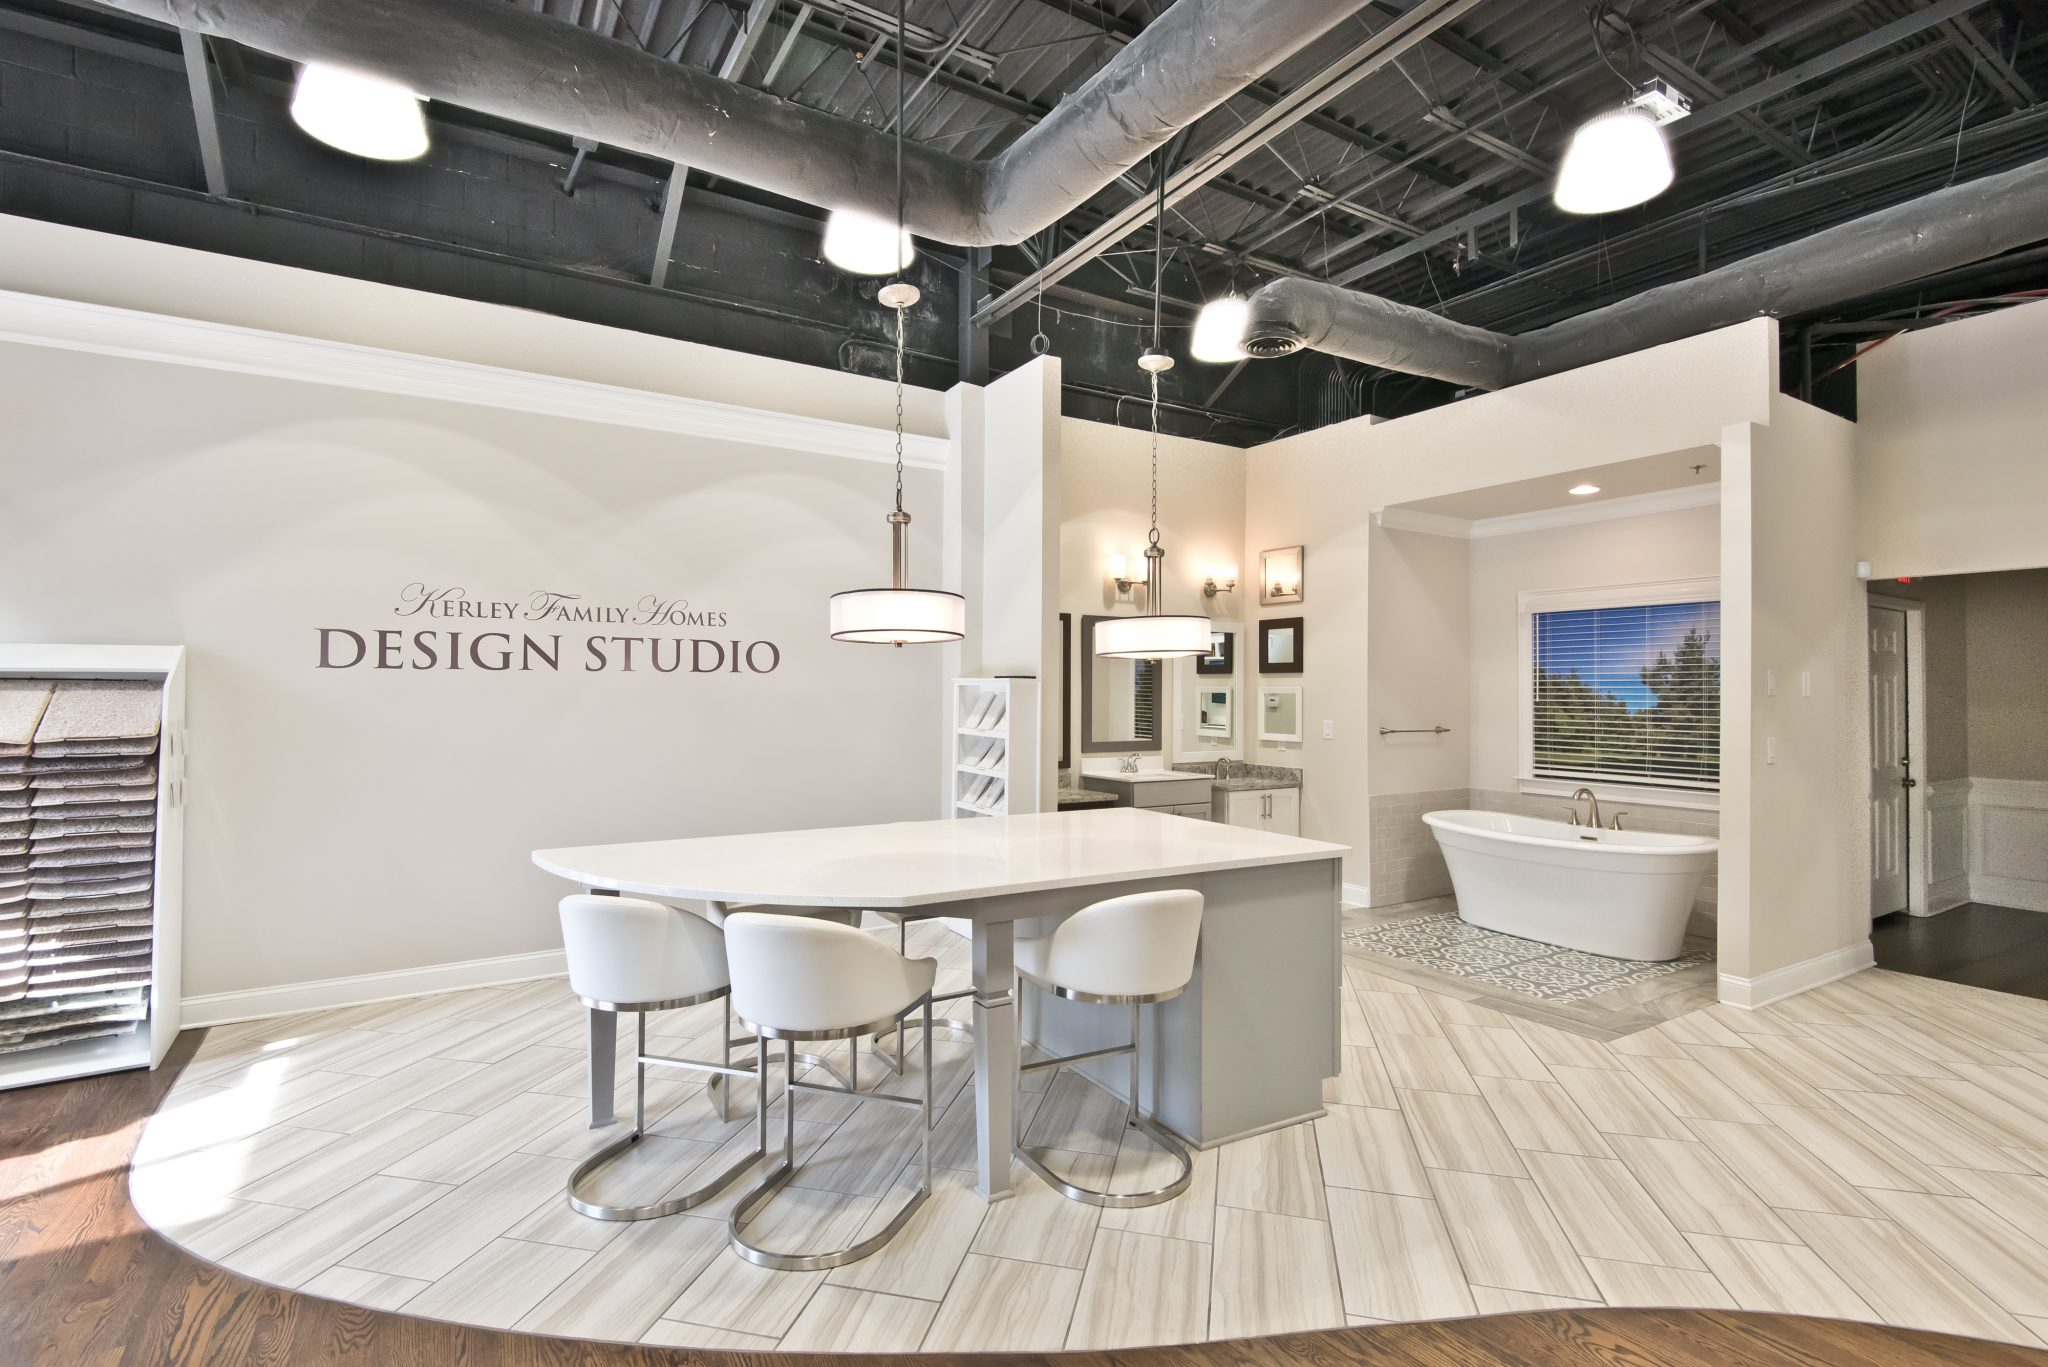 the Kerley Family Homes home design studio